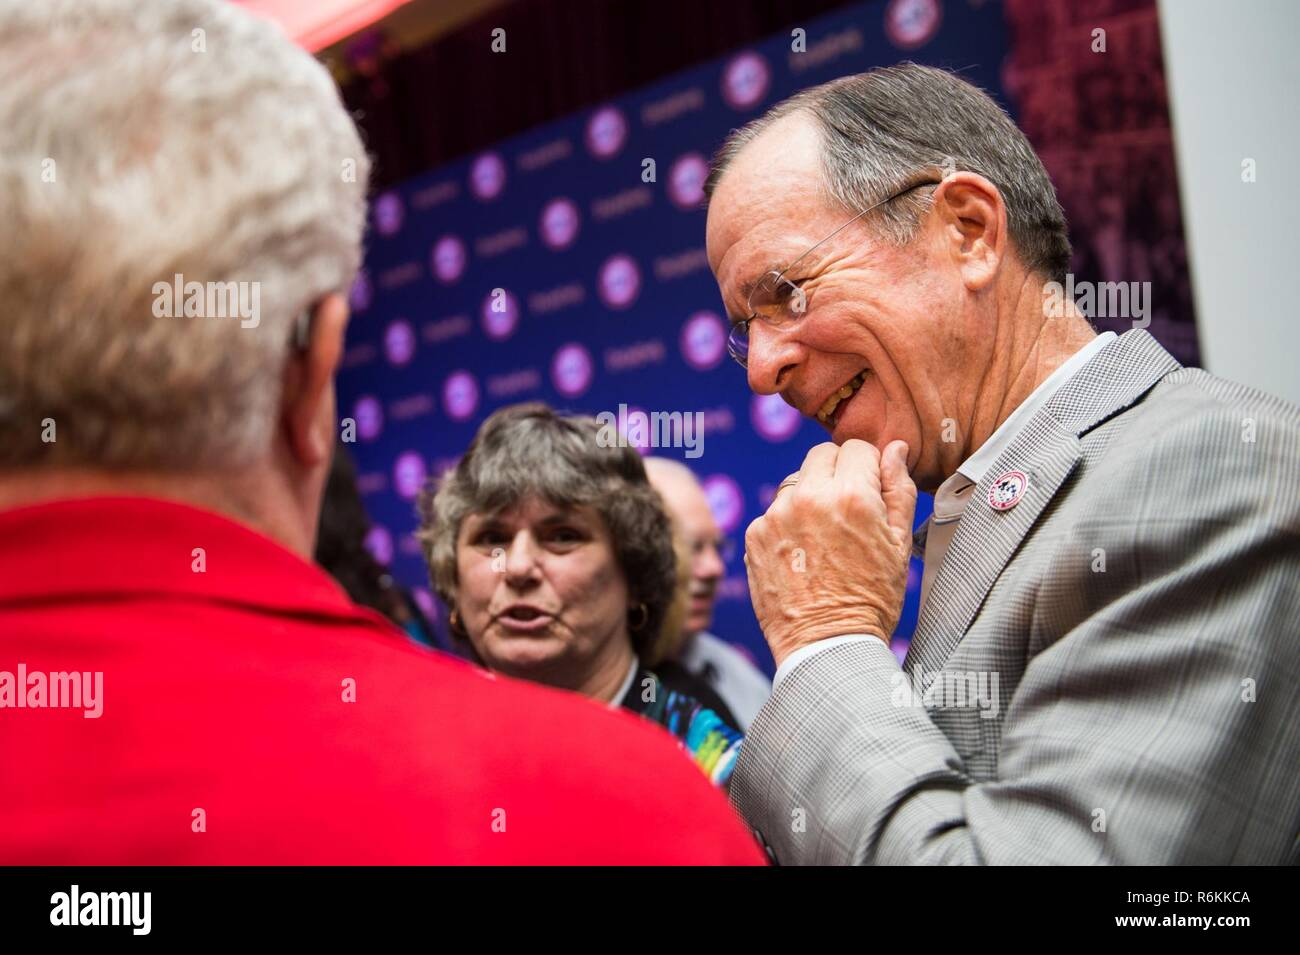 Retired U.S. Navy Adm. Mike Mullen, former Chairman of the Joint Chiefs of Staff and Honorary TAPS Board member,meets surviving family members after the Tragedy Assistance Program for Survivors (TAPS) Grand Banquet at the 23rd TAPS National Military Survivor Seminar and Good Grief Camp in Arlington, Va., May 27, 2017. TAPS brings surviving family members together at the nation's capital during Memorial Day weekend to participate in seminars, workshops, and activities that support and honor their sacrifice. - Stock Image